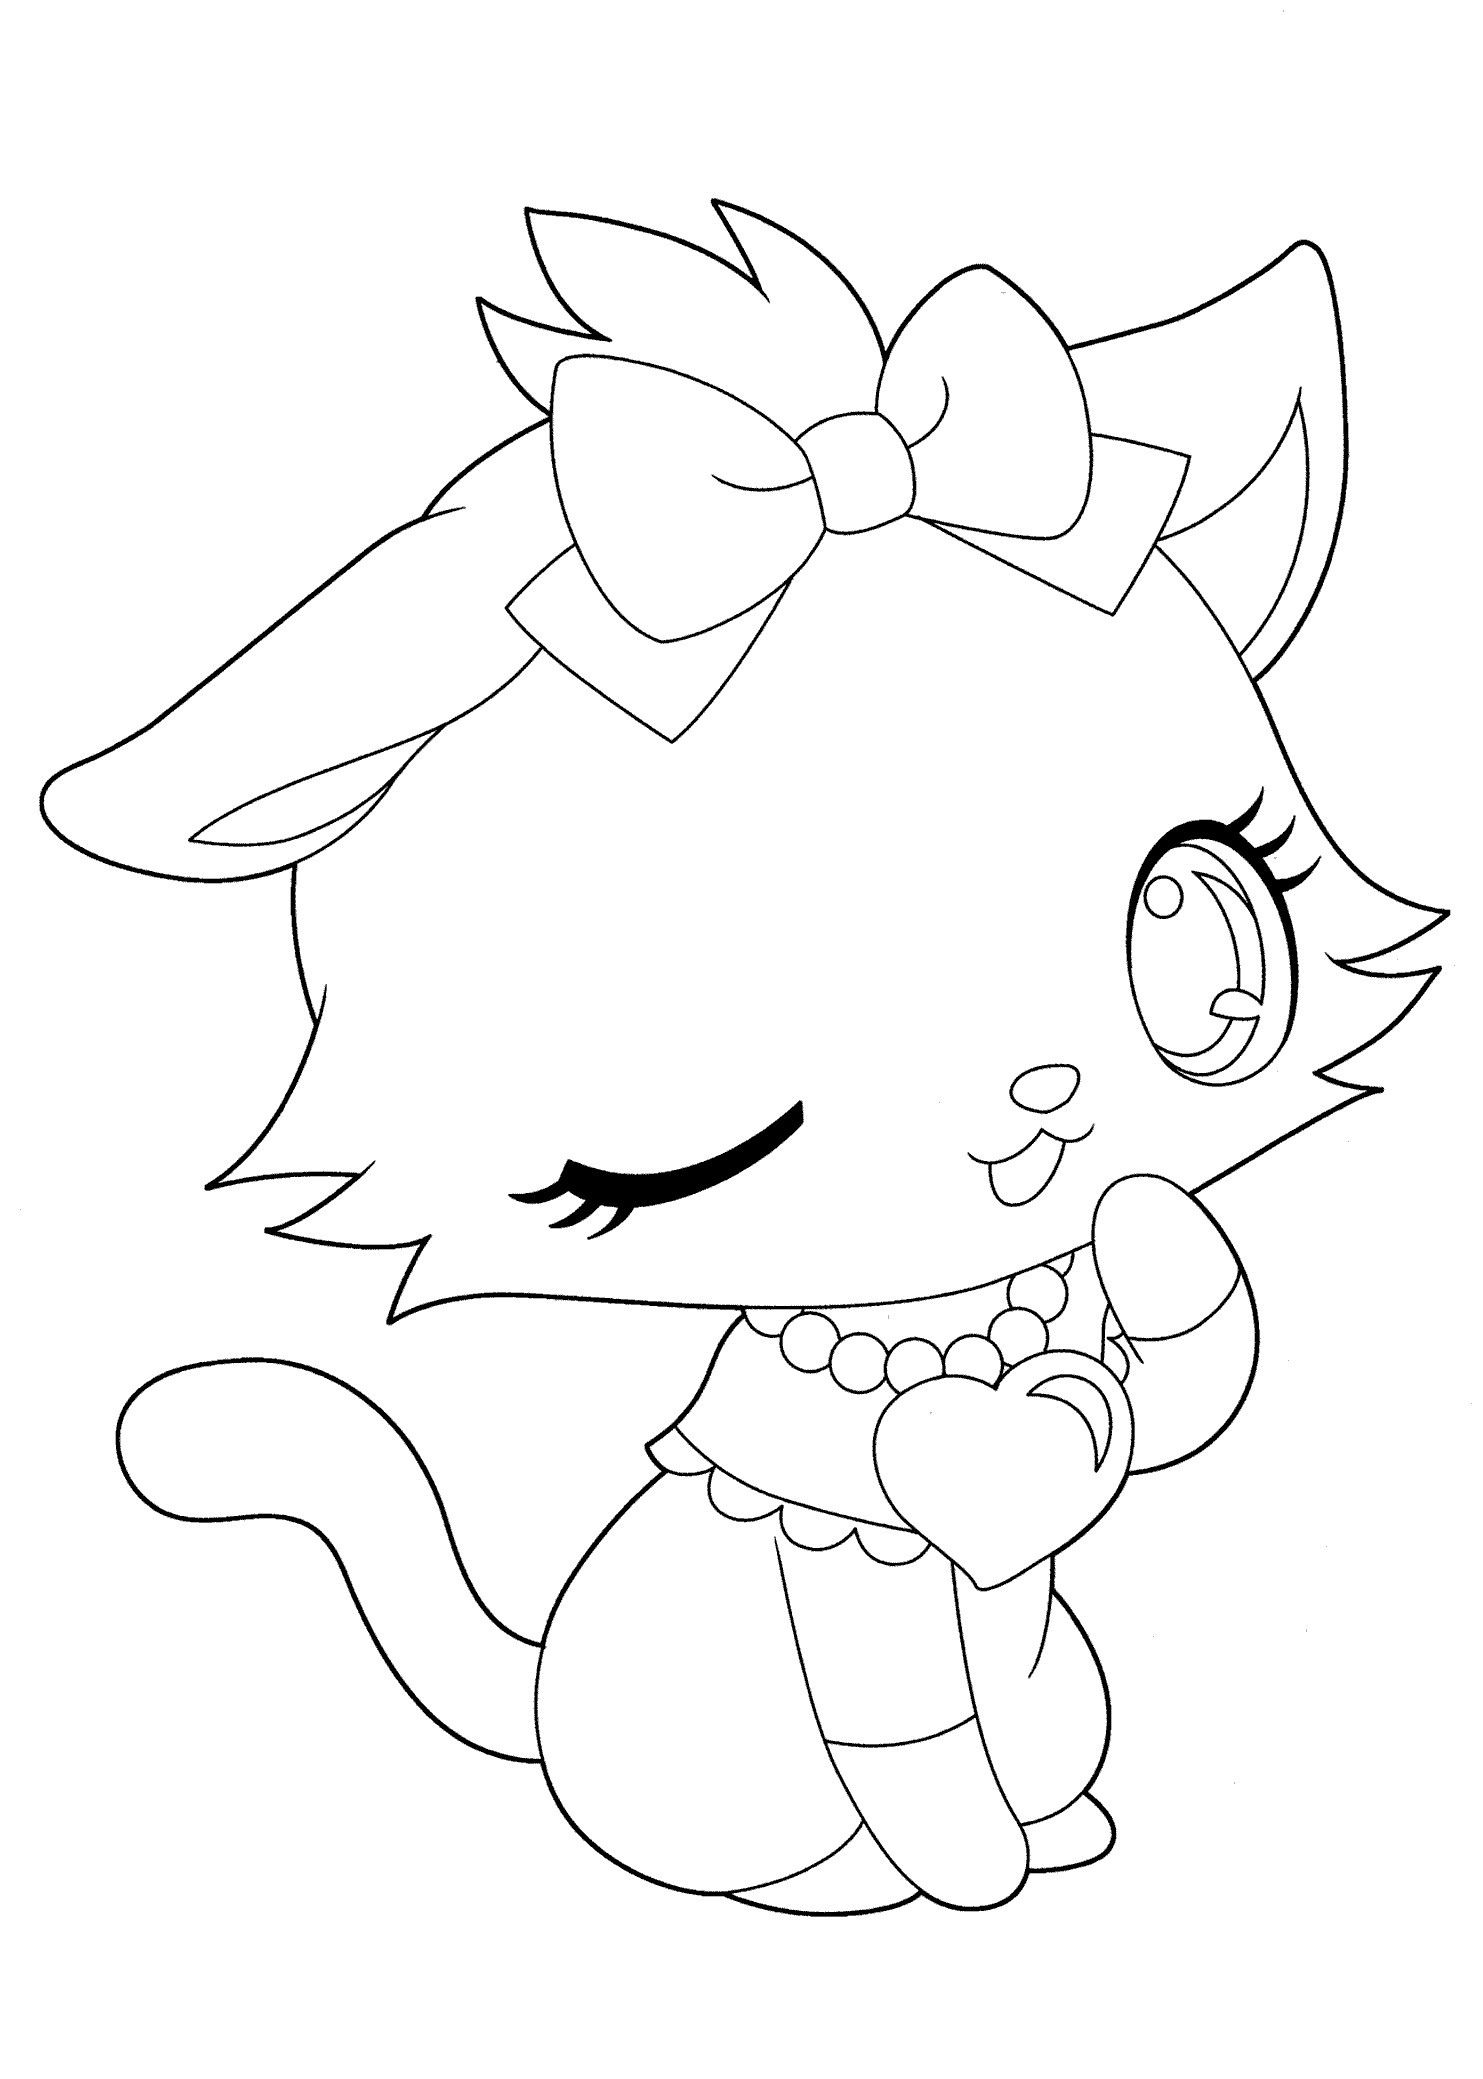 Cute Cat Coloring Pages Through The Thousands Of Images On The Internet About Cute Cat Coloring Pag Kitty Coloring Unicorn Coloring Pages Cute Coloring Pages